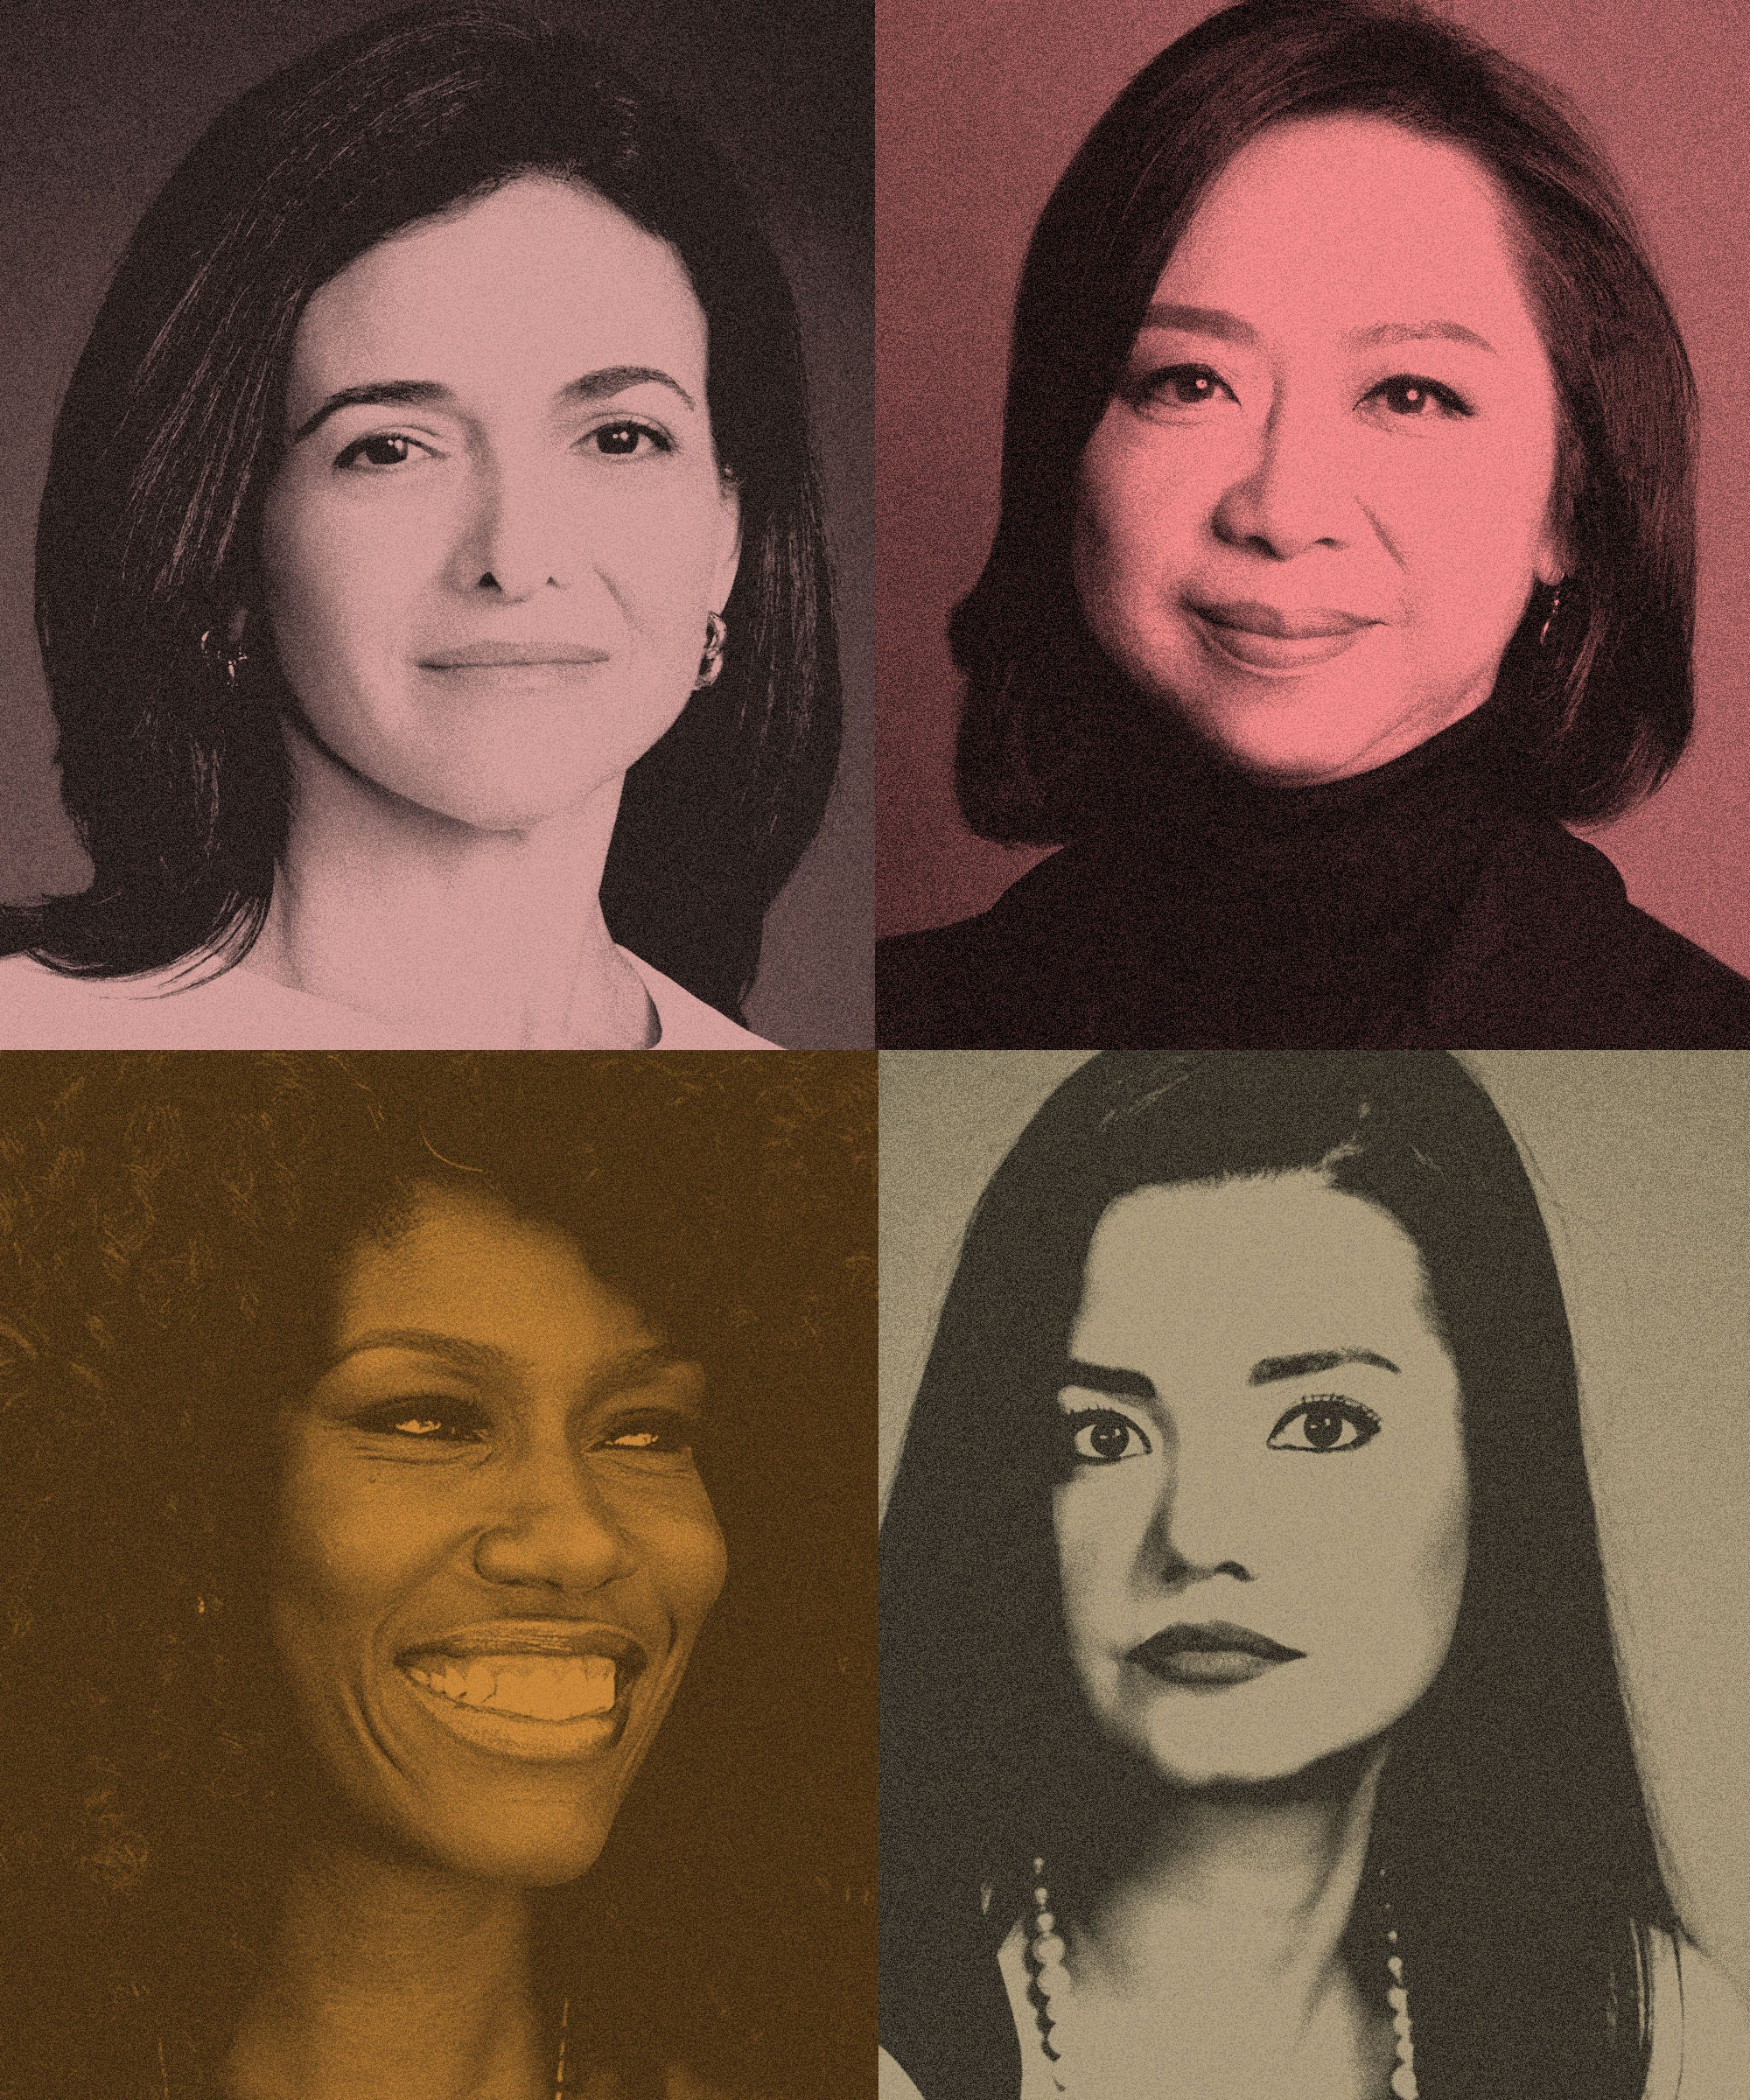 You'd Never Guess That: Inspiring Women Share Their Extraordinary Stories